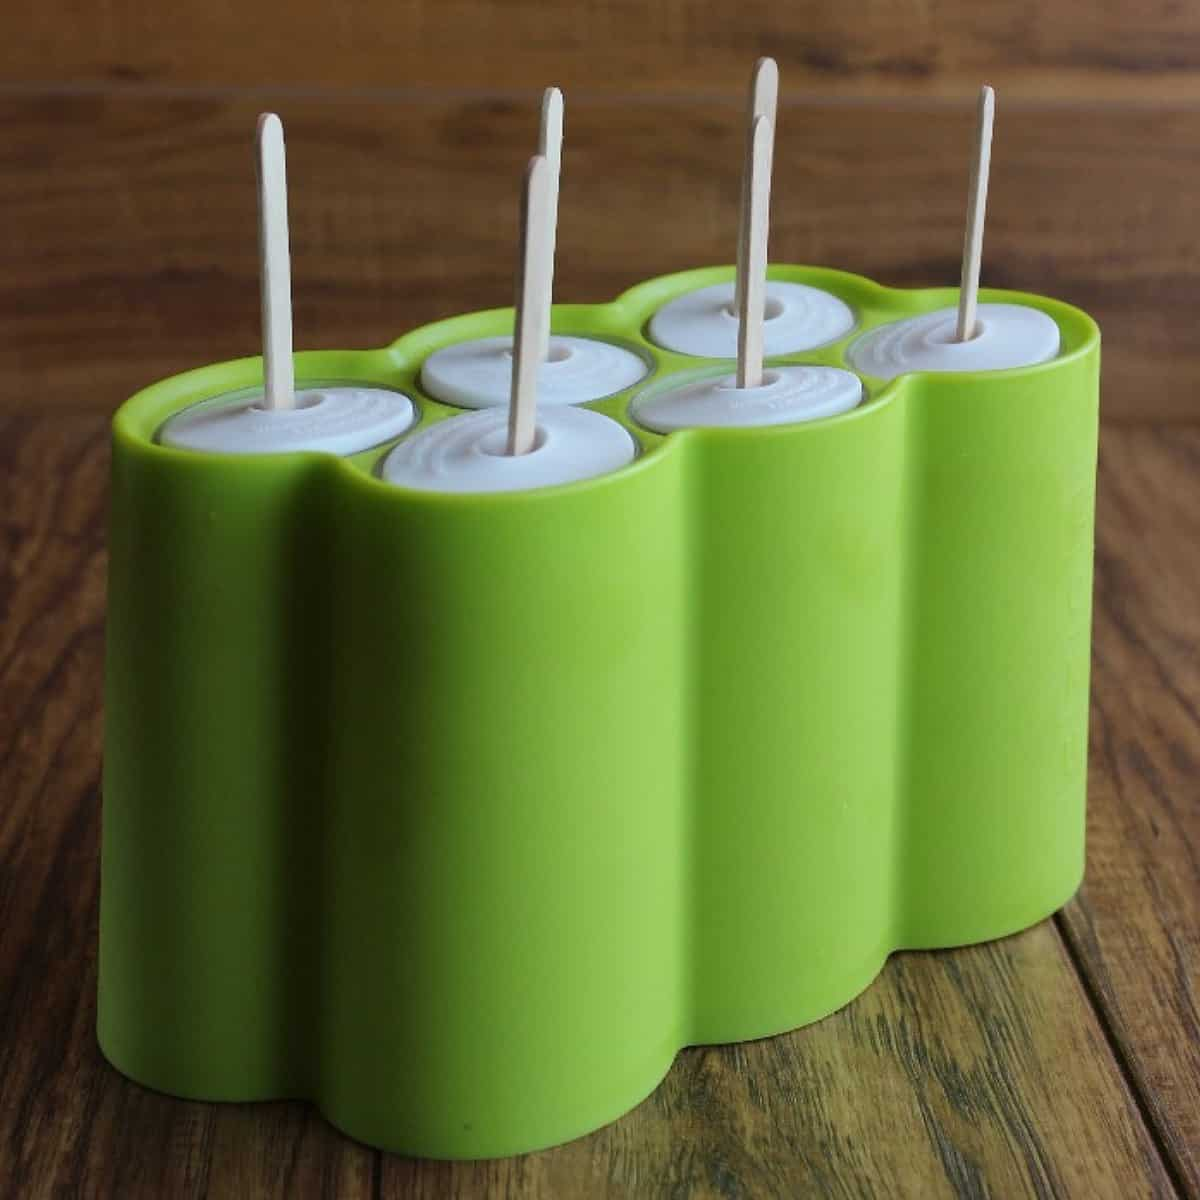 Popsicle molds are round and bright lime green and they have popsicle sticks coming out of the top.